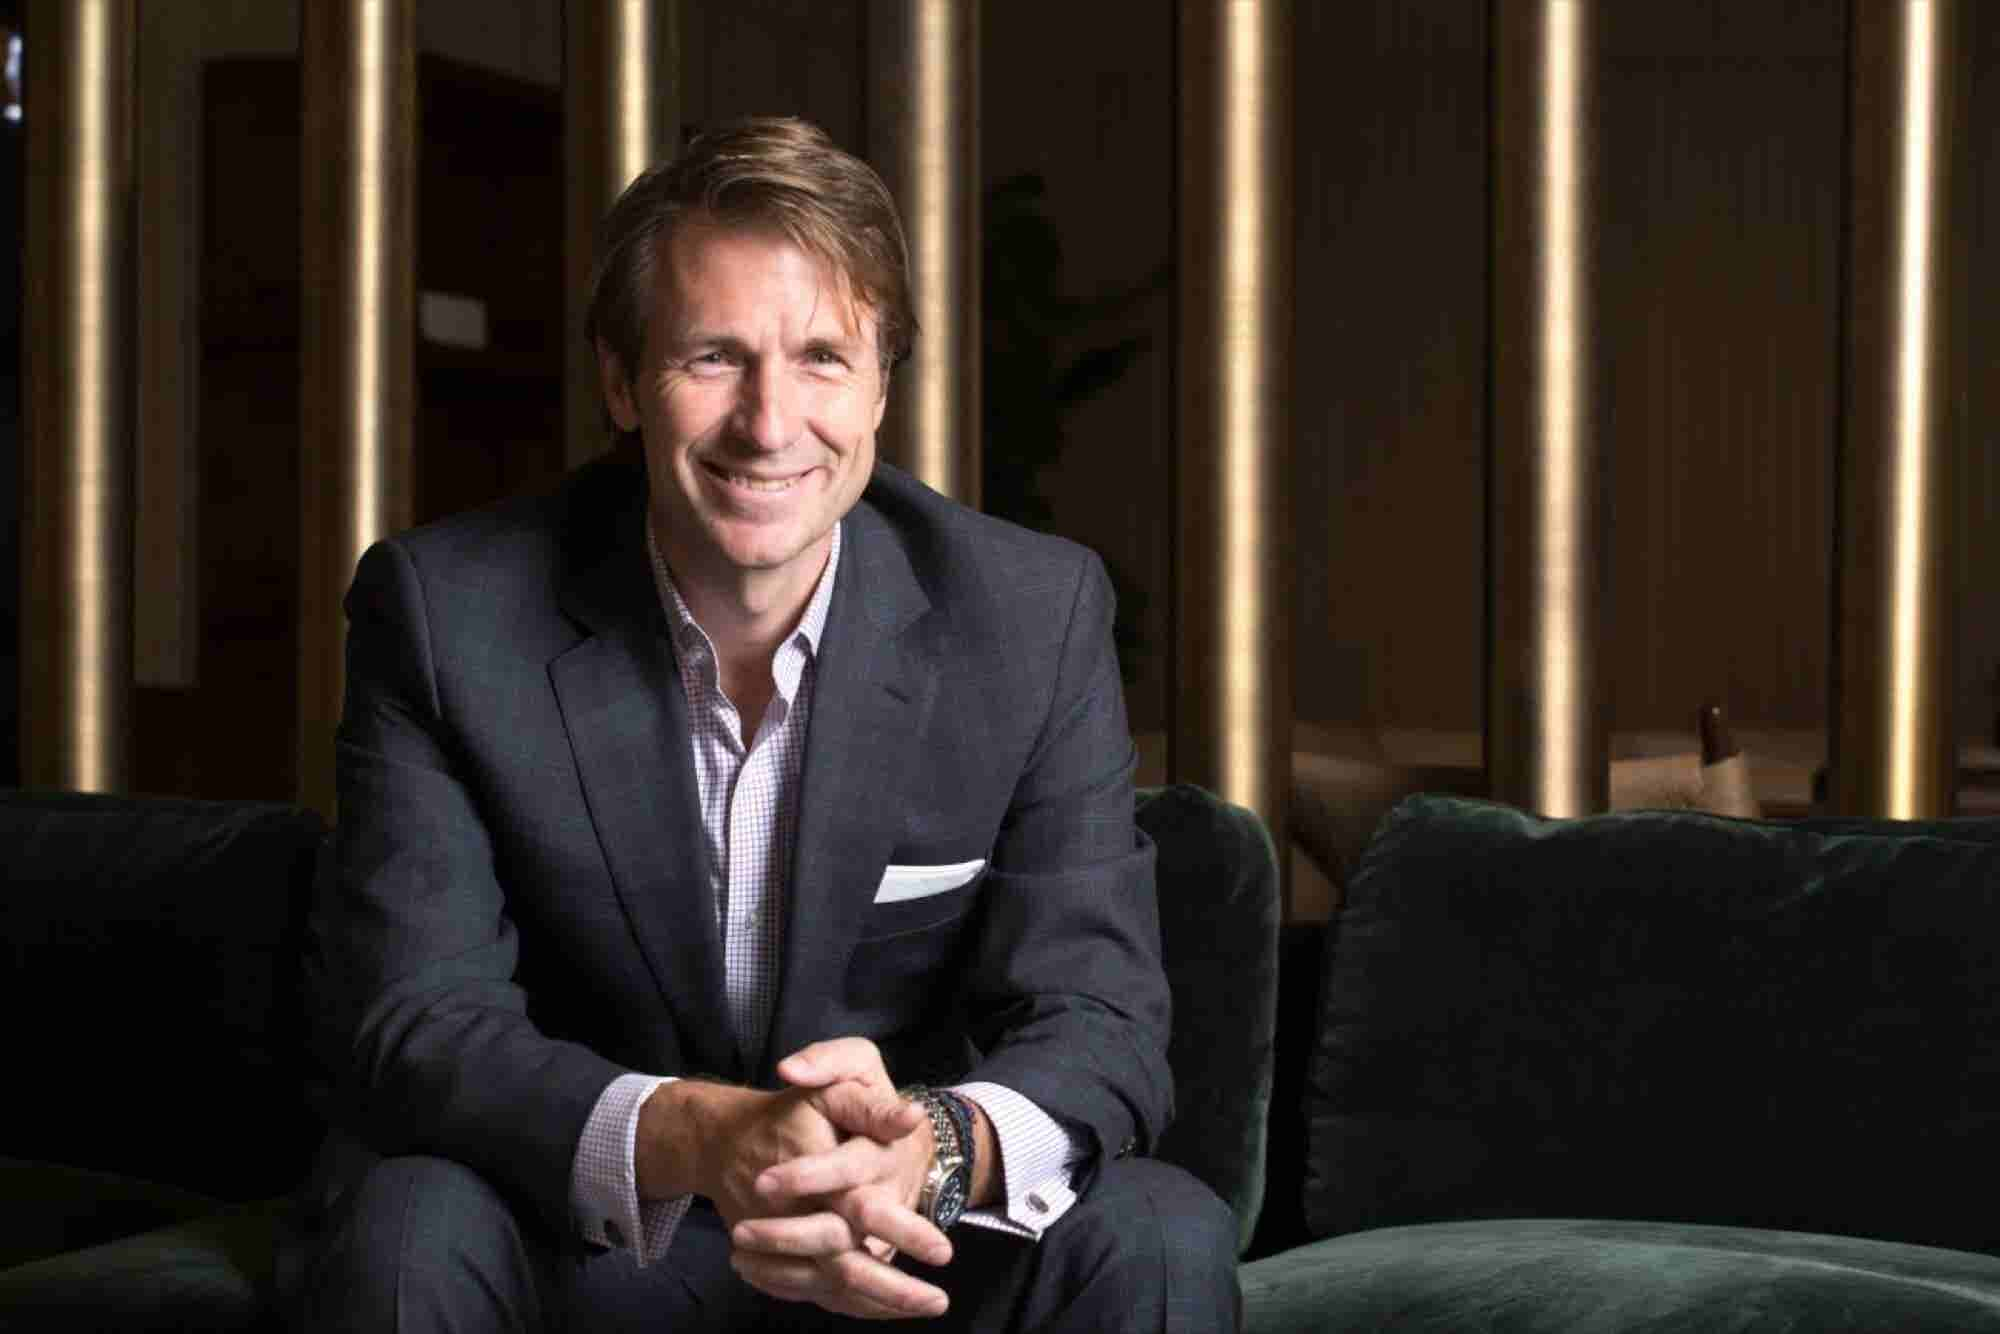 Building Brand Relevance: Baker Interiors Group President and CEO Russell Towner